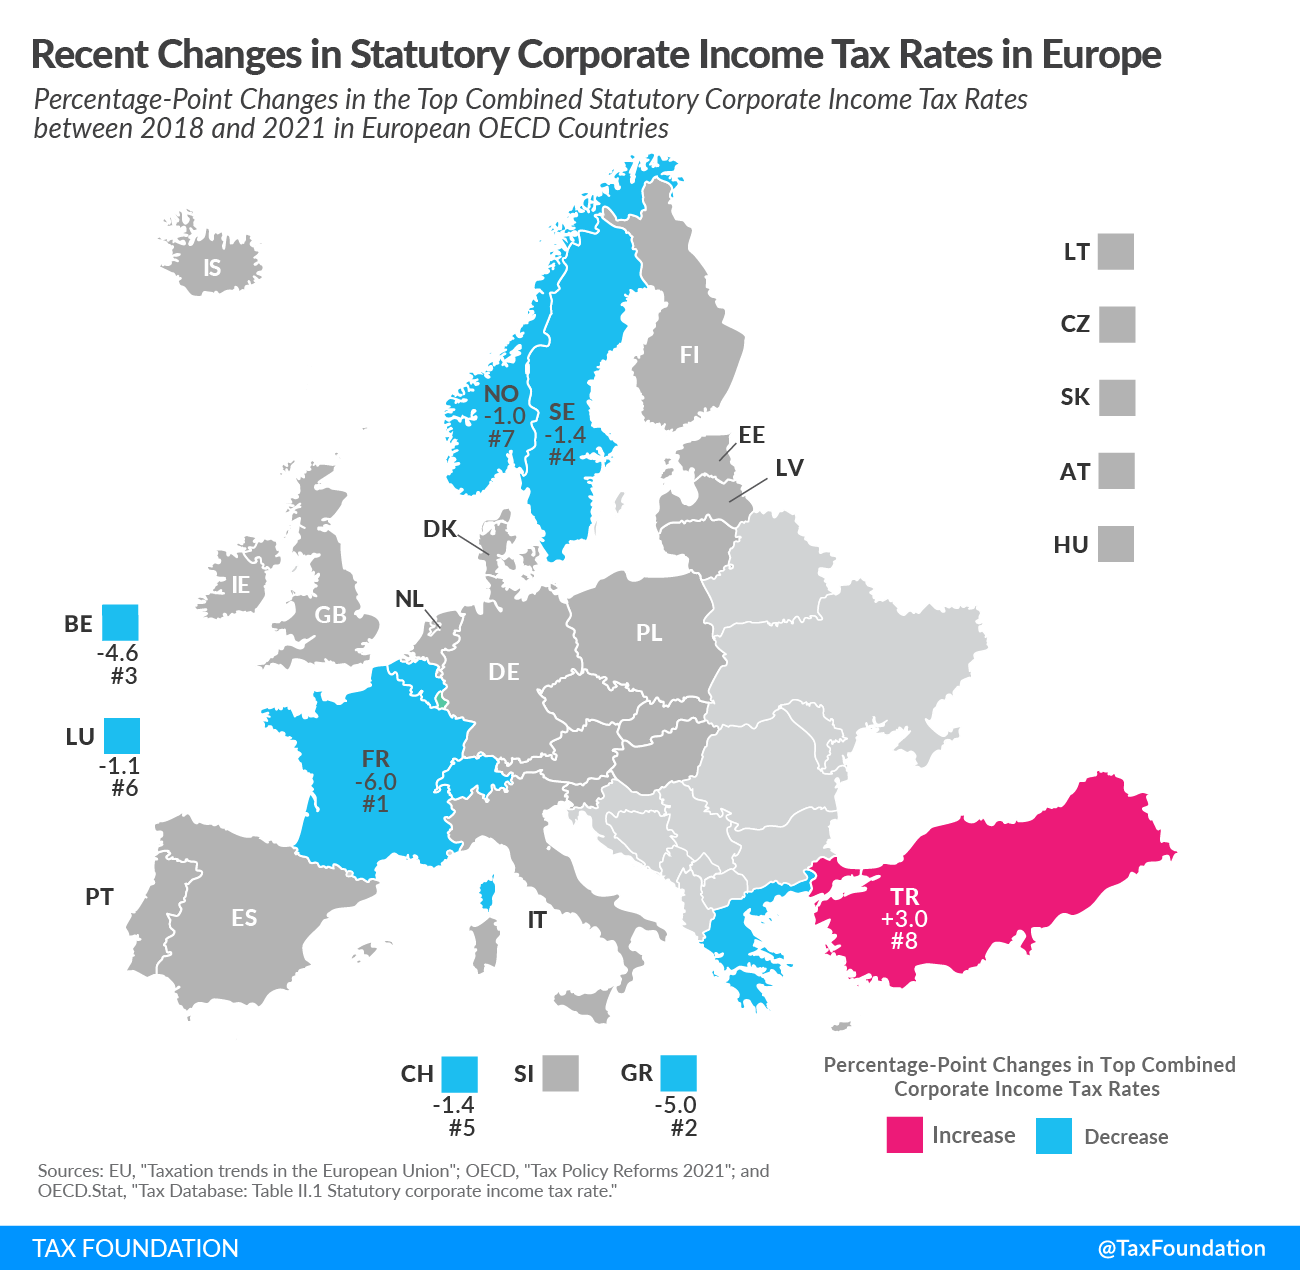 Recent Changes in Corporate Income Tax Rates in Europe, 2018-2021